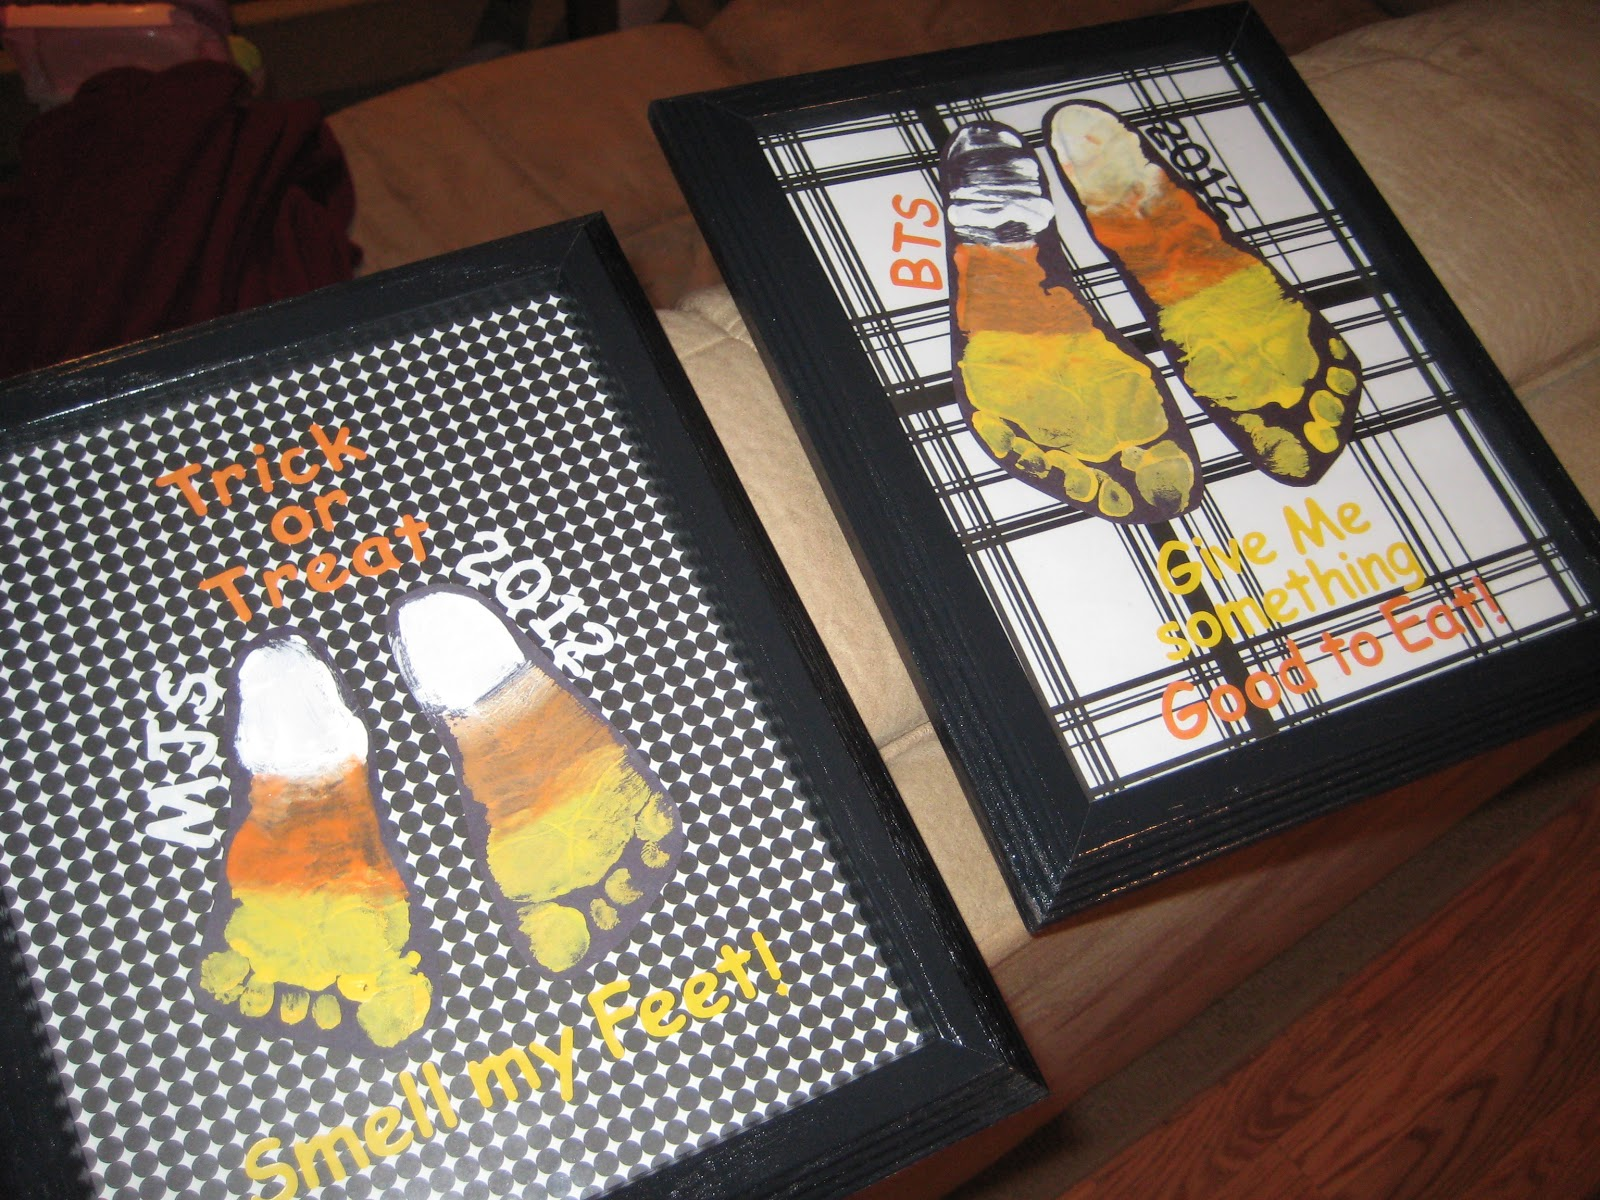 The finished result - candy corn foot print art